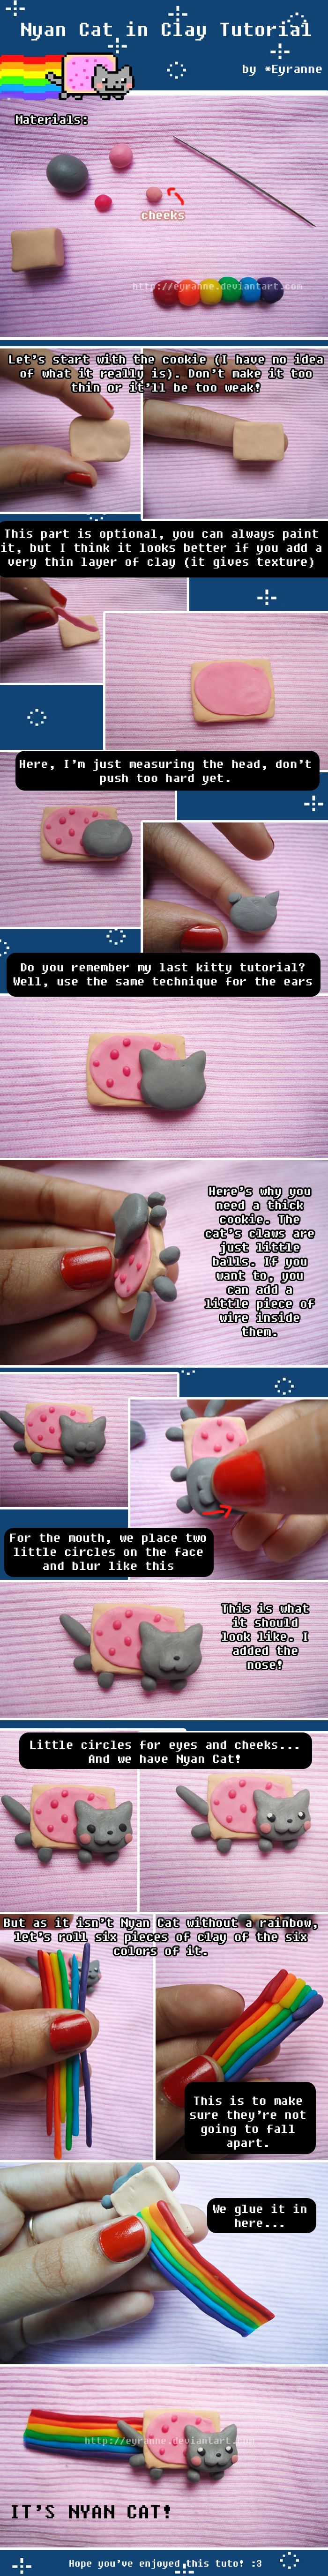 Kawaii Nyan Nyan Cat Charm / DIY Clay  just add a broach backing and you will have yourself a kick ass broach!